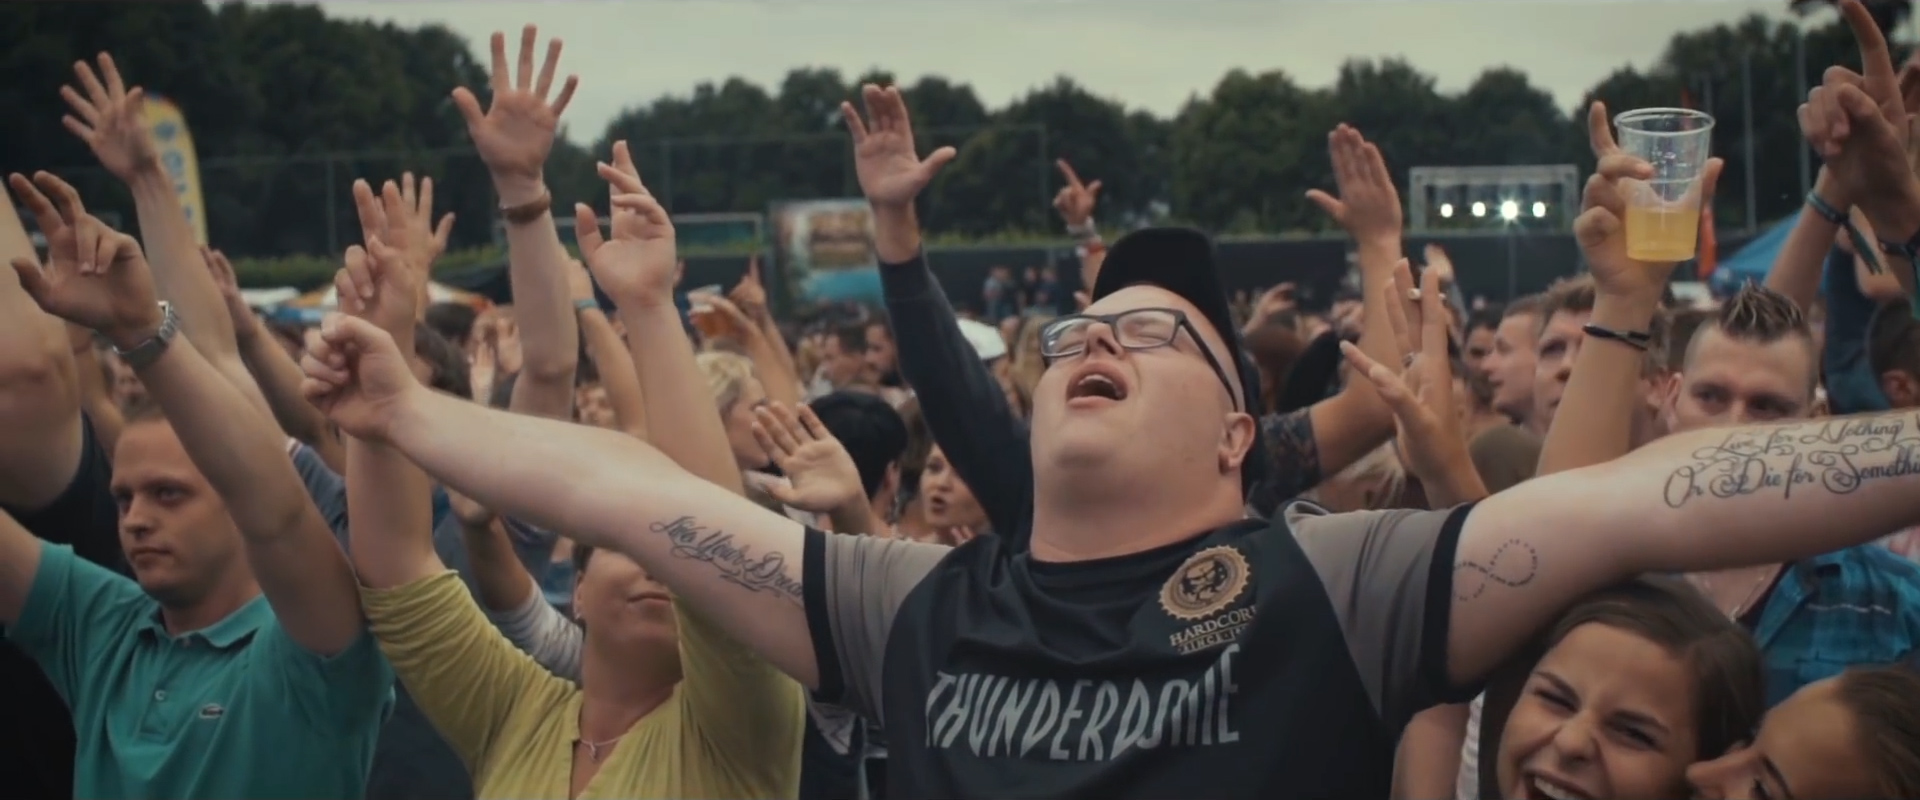 Outlands Aftermovie